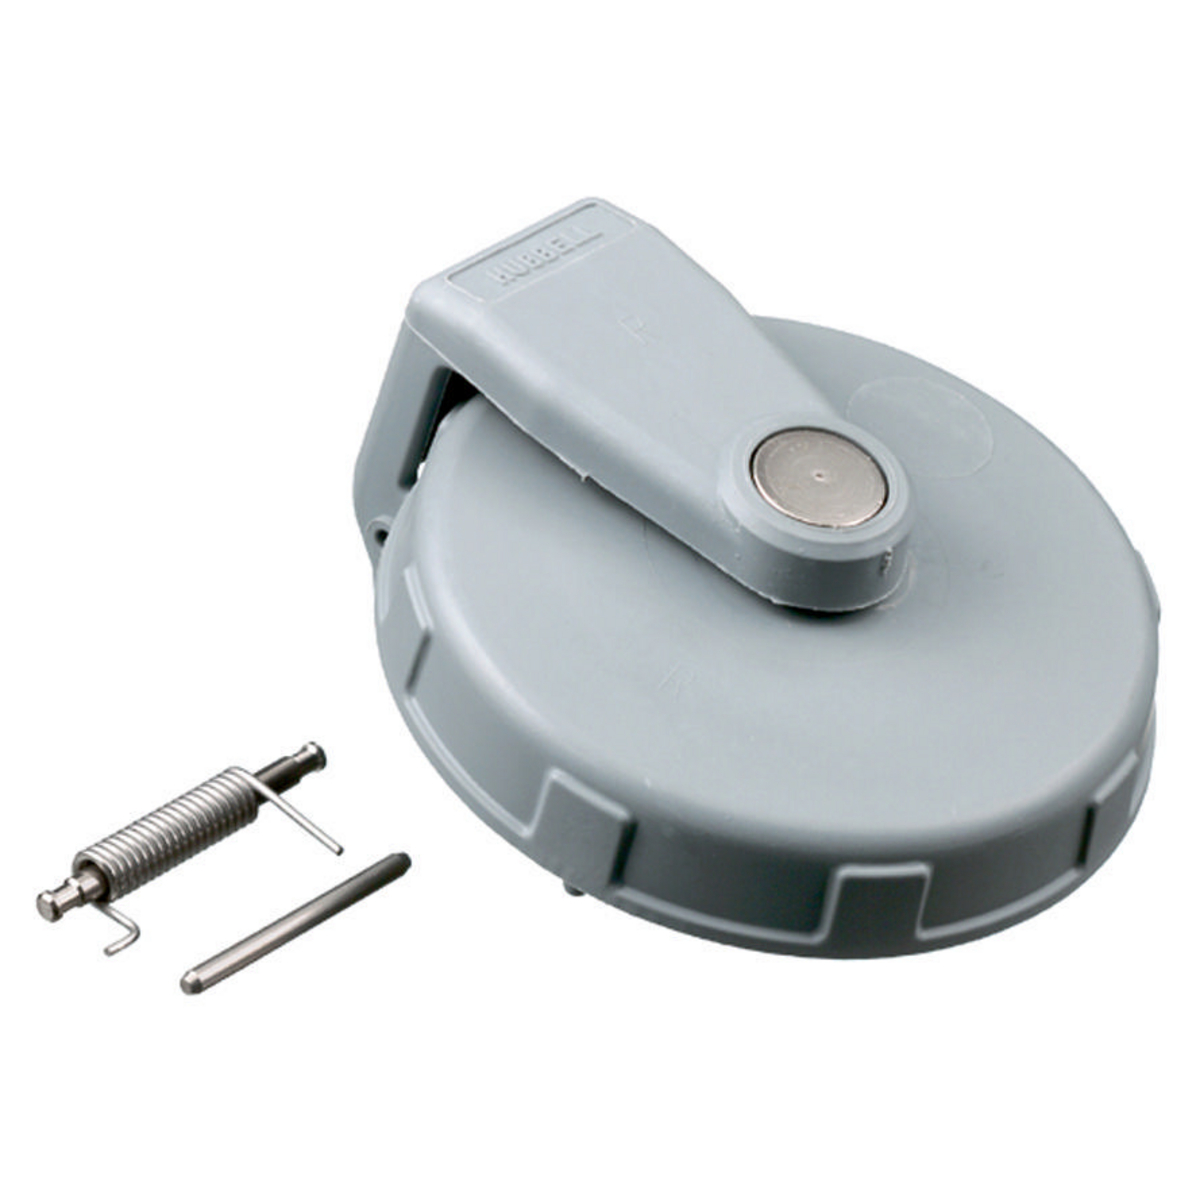 Hubbell CA60 Watertight IEC Pin and Sleeve Device Cover Assembly